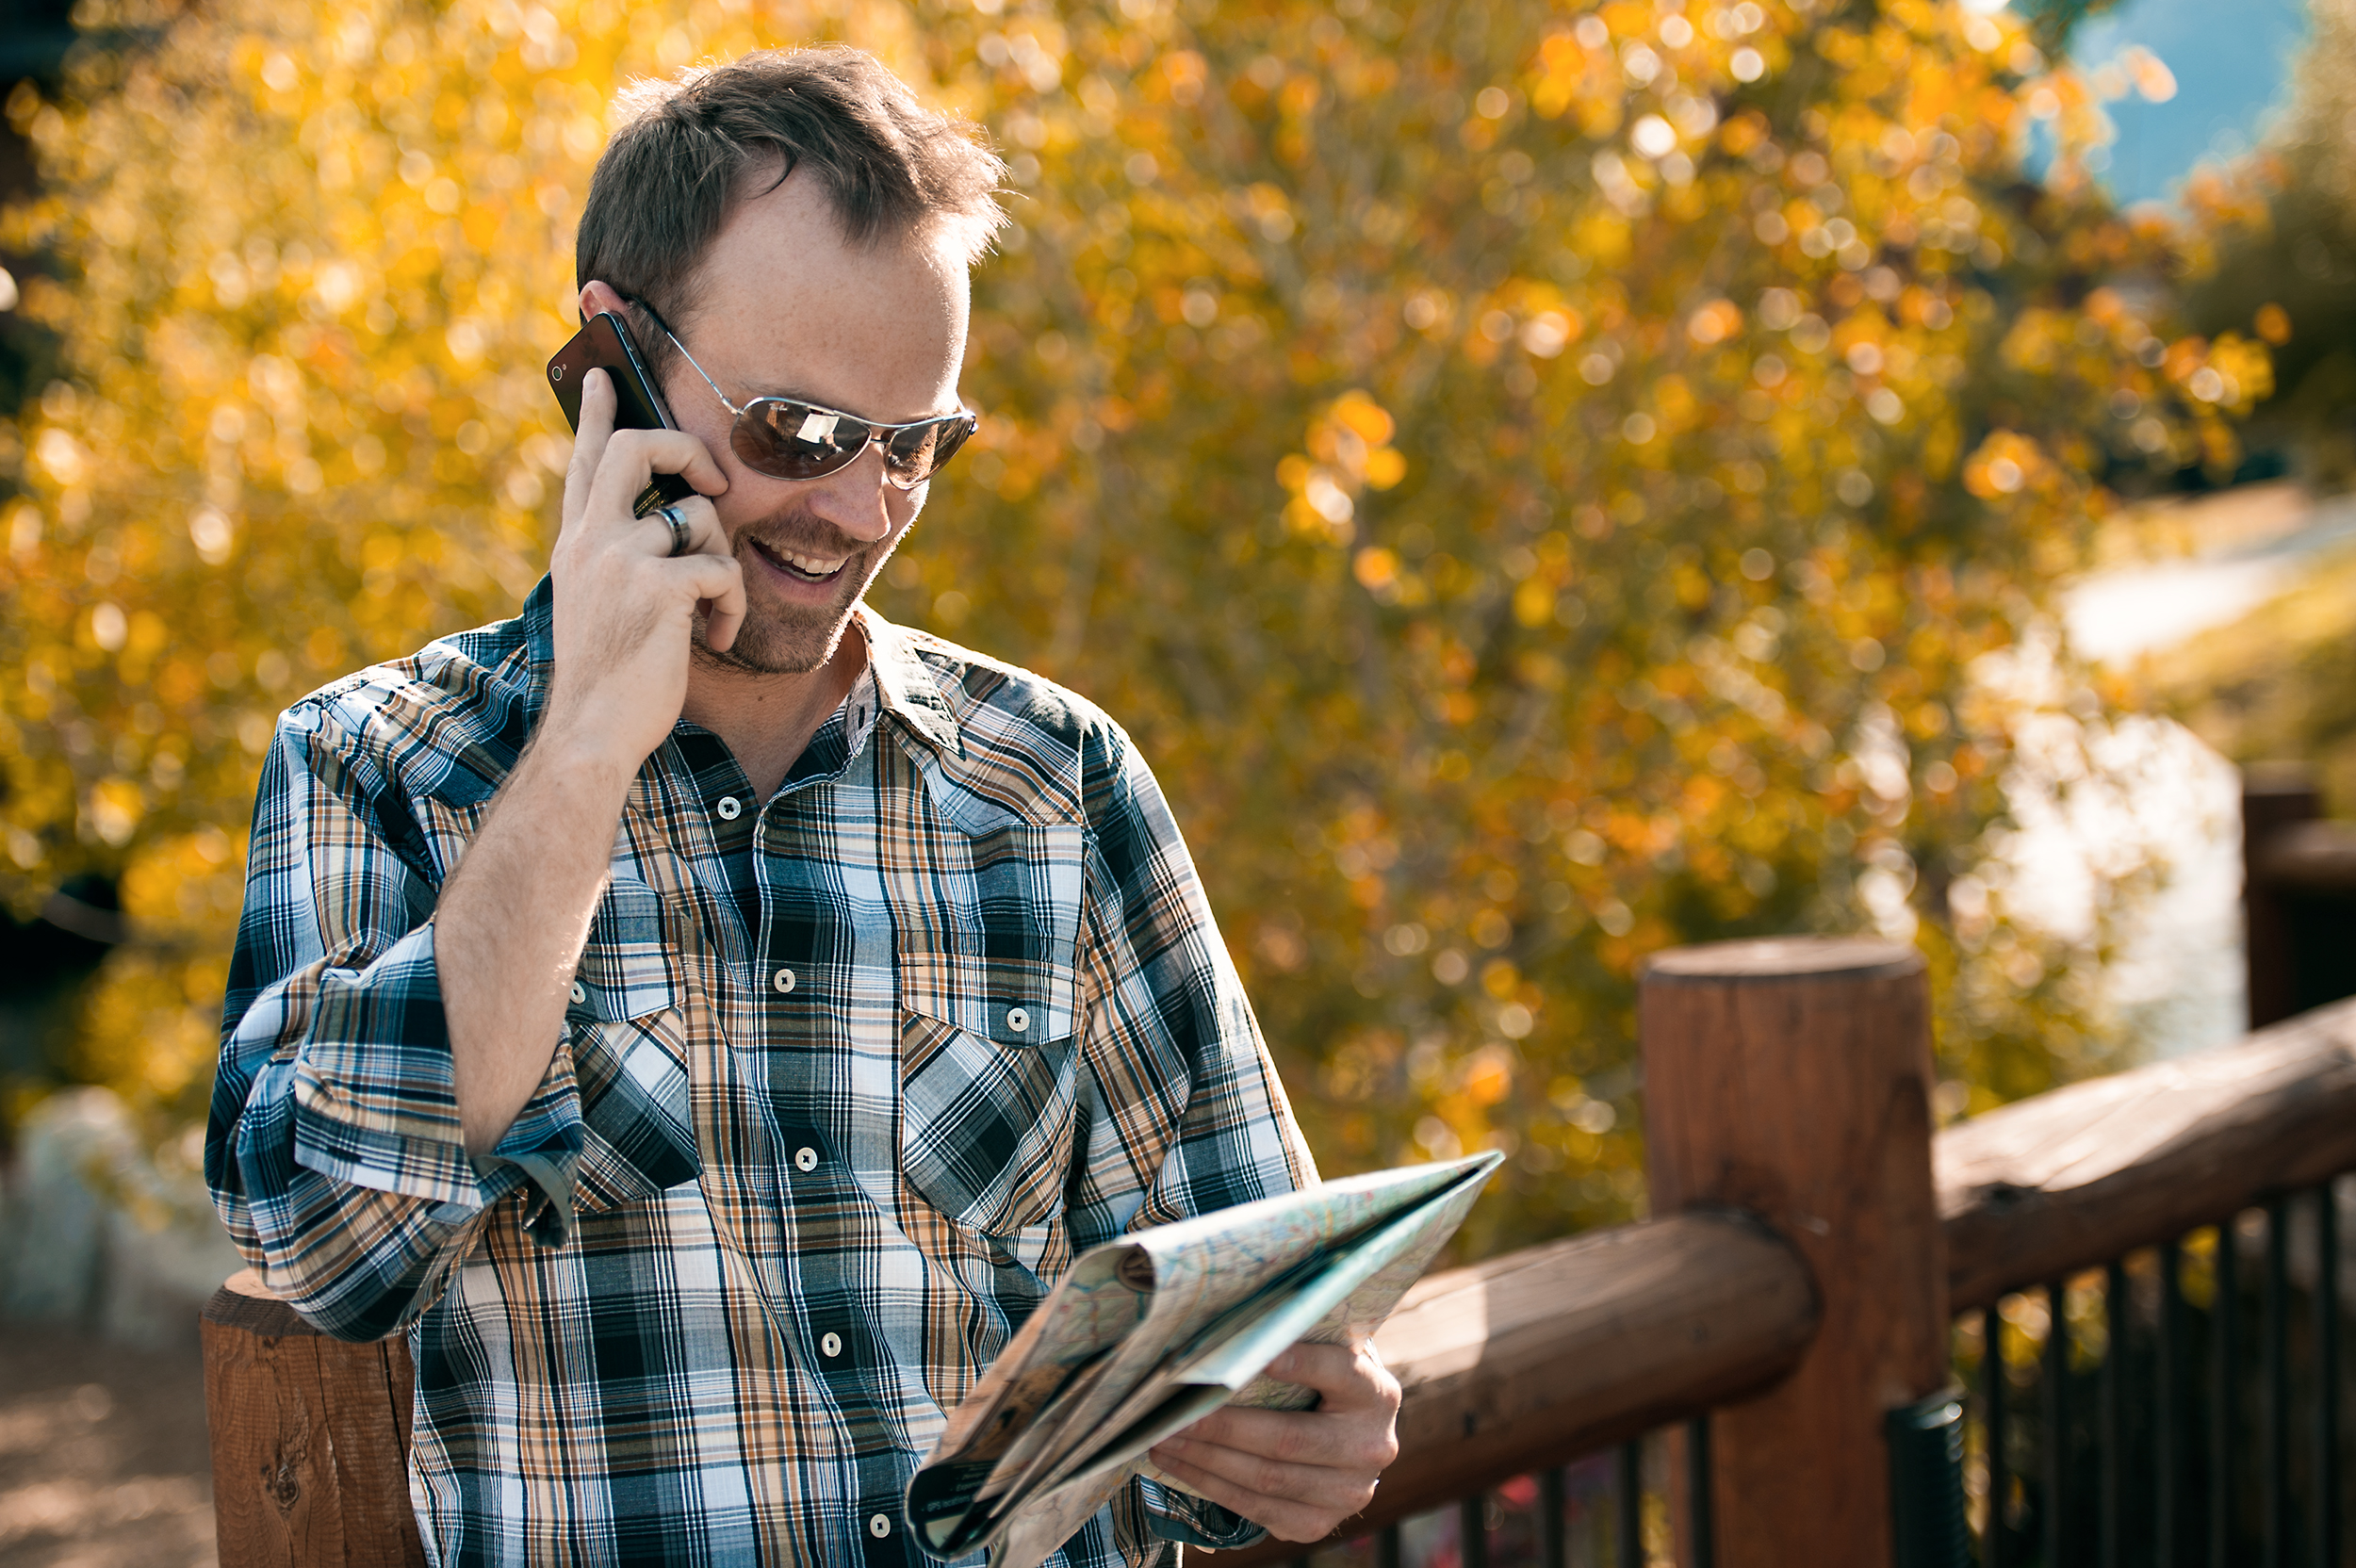 Lifestyle image of a man making plans in Jackson, WY